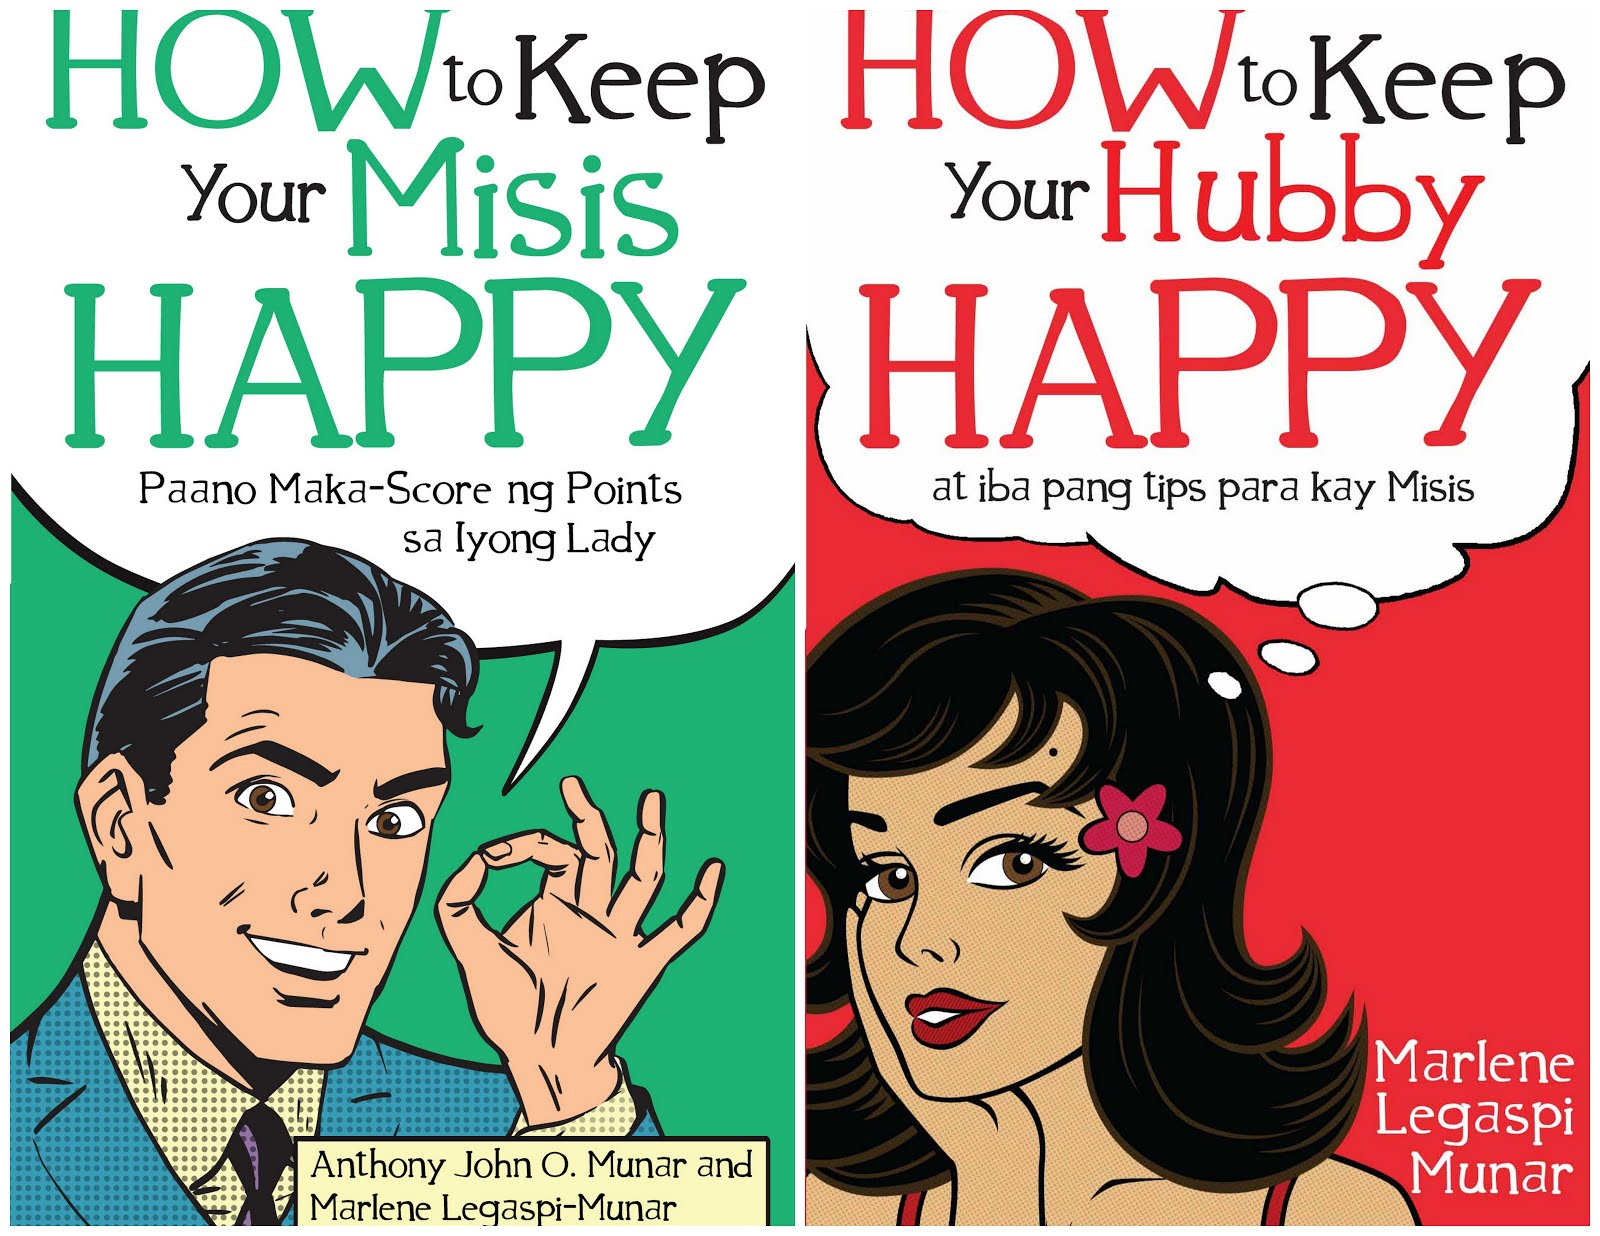 How to Keep Your Misis Happy and How to Keep Your Hubby Happy